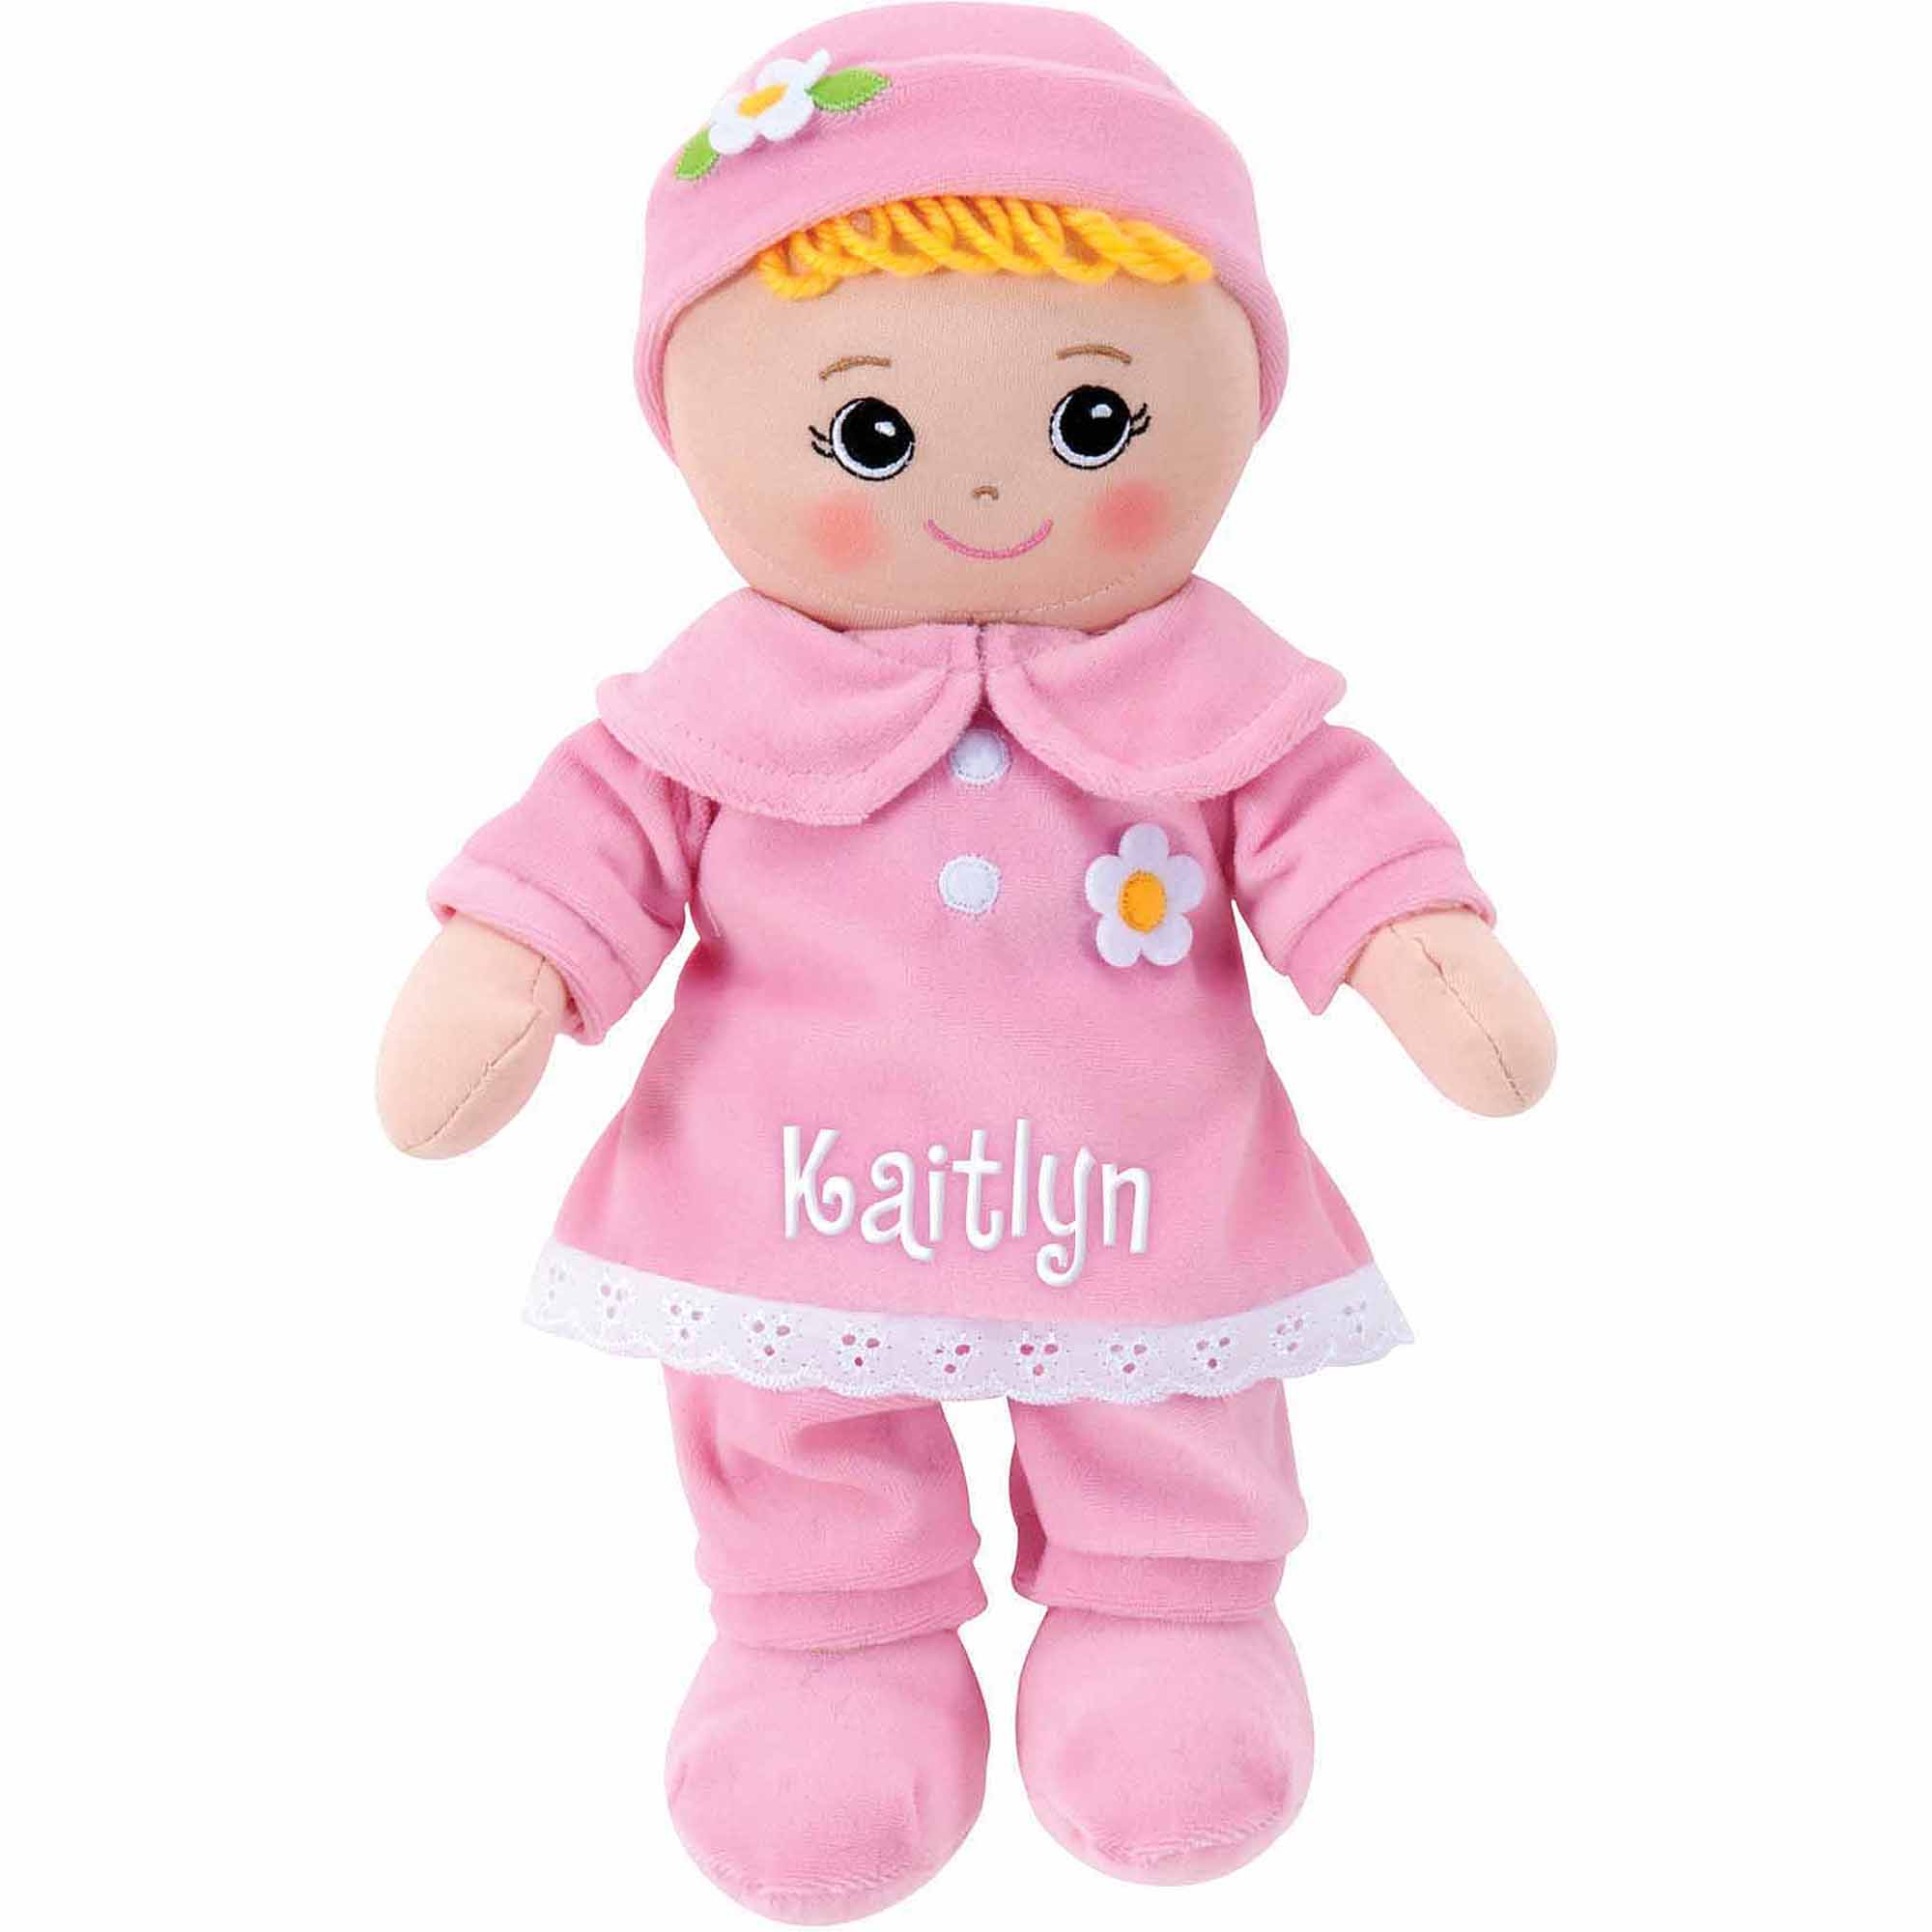 Personalized Baby Doll